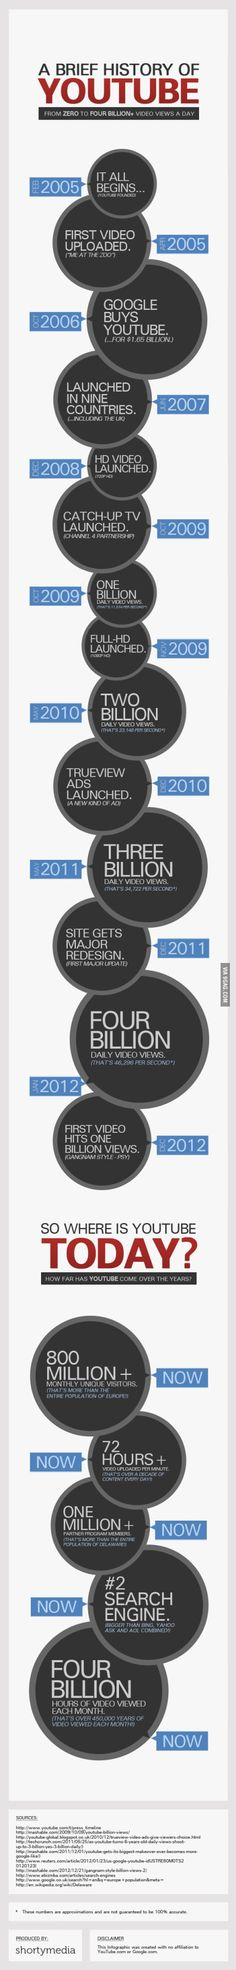 A brief history of YouTube de youtub, histori, youtub infograph, social media, youtube, socialmedia, technolog, video market, media infograph